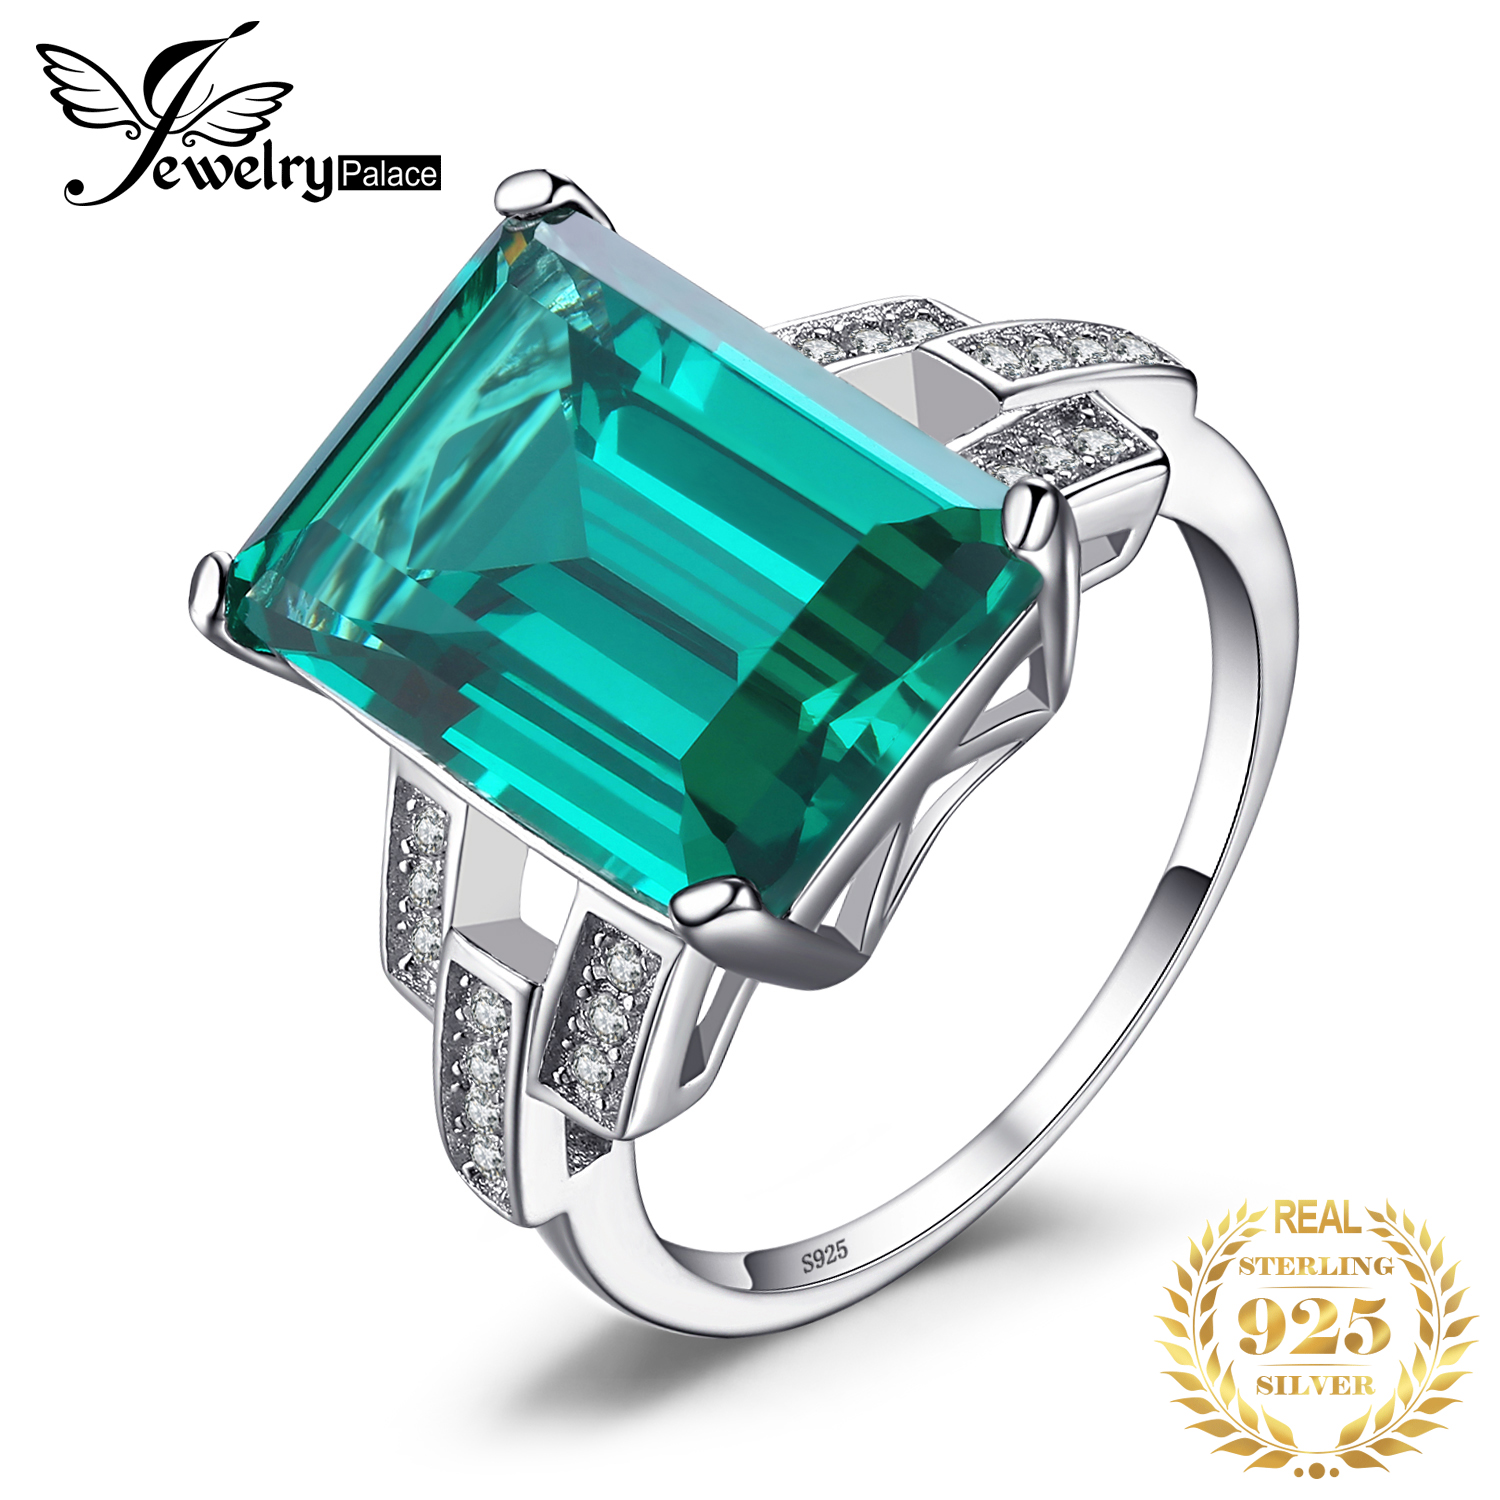 JewelryPalace Luxury 5.9ct Created Nano Russian Emerald Cocktail Ring 925 Sterling Silver Ring for Women Fine Wedding Jewelry